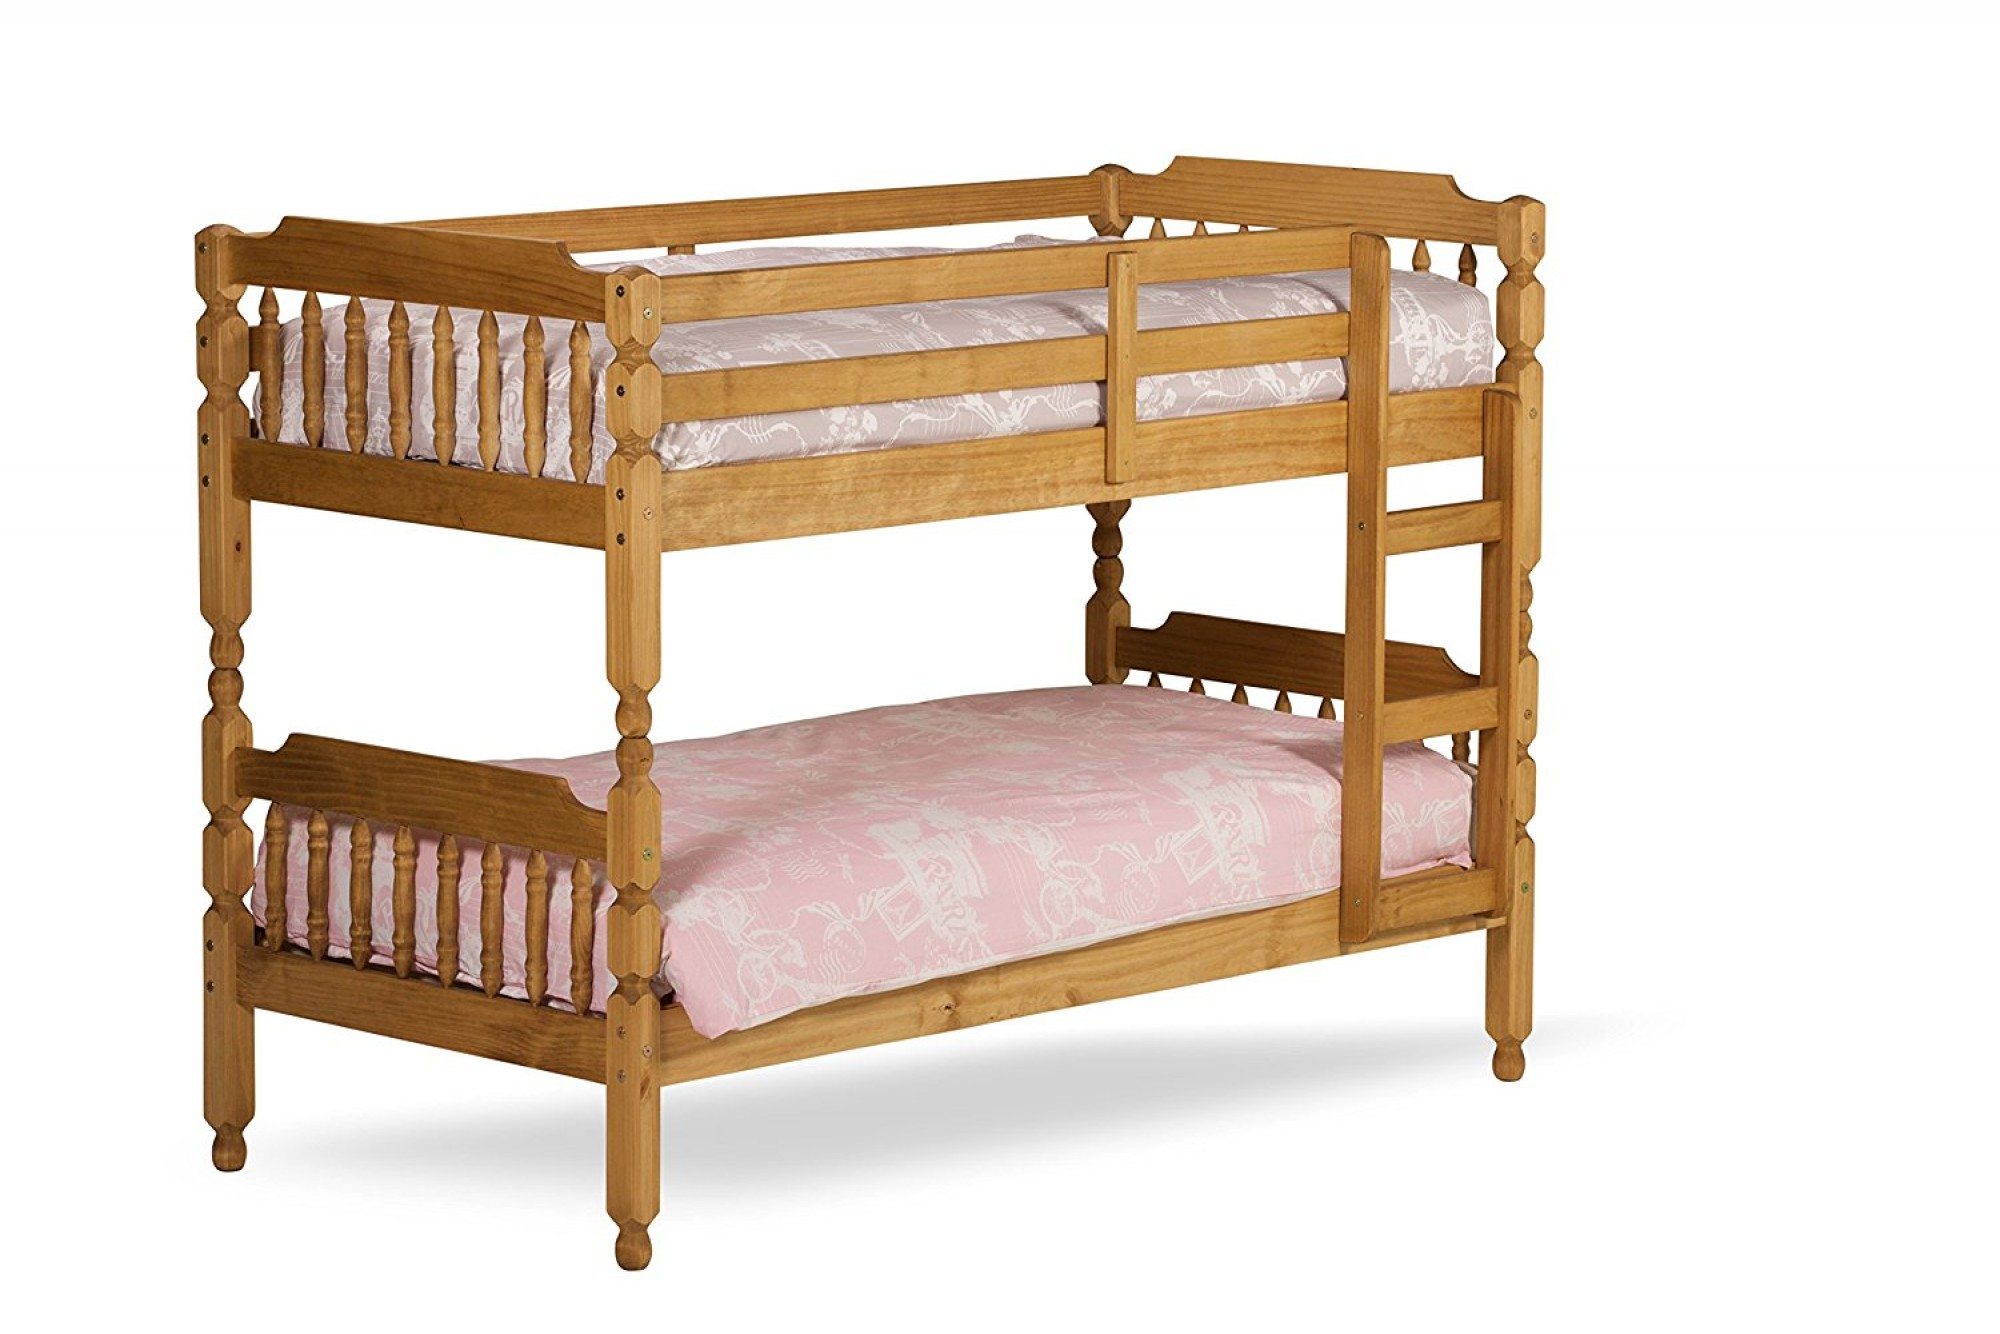 30-Colonial-Spindle-Bunk-Bed-in-Waxed-3RqpQkNDLwVxYslR4ATh-1522937398-98.jpg